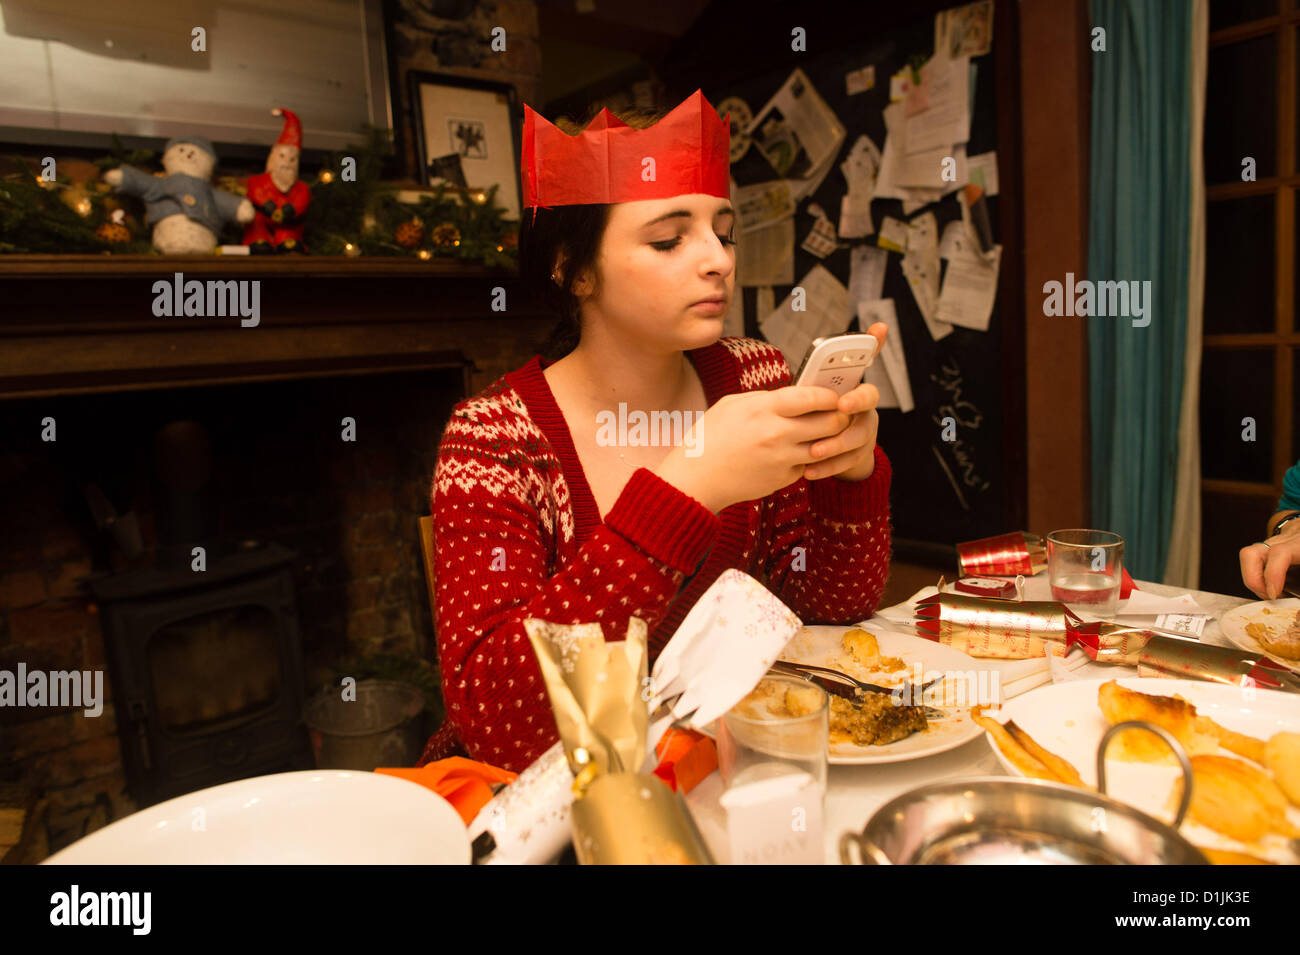 Christmas Day, 25 December 2012, A 14 year old teenage girl texting ...